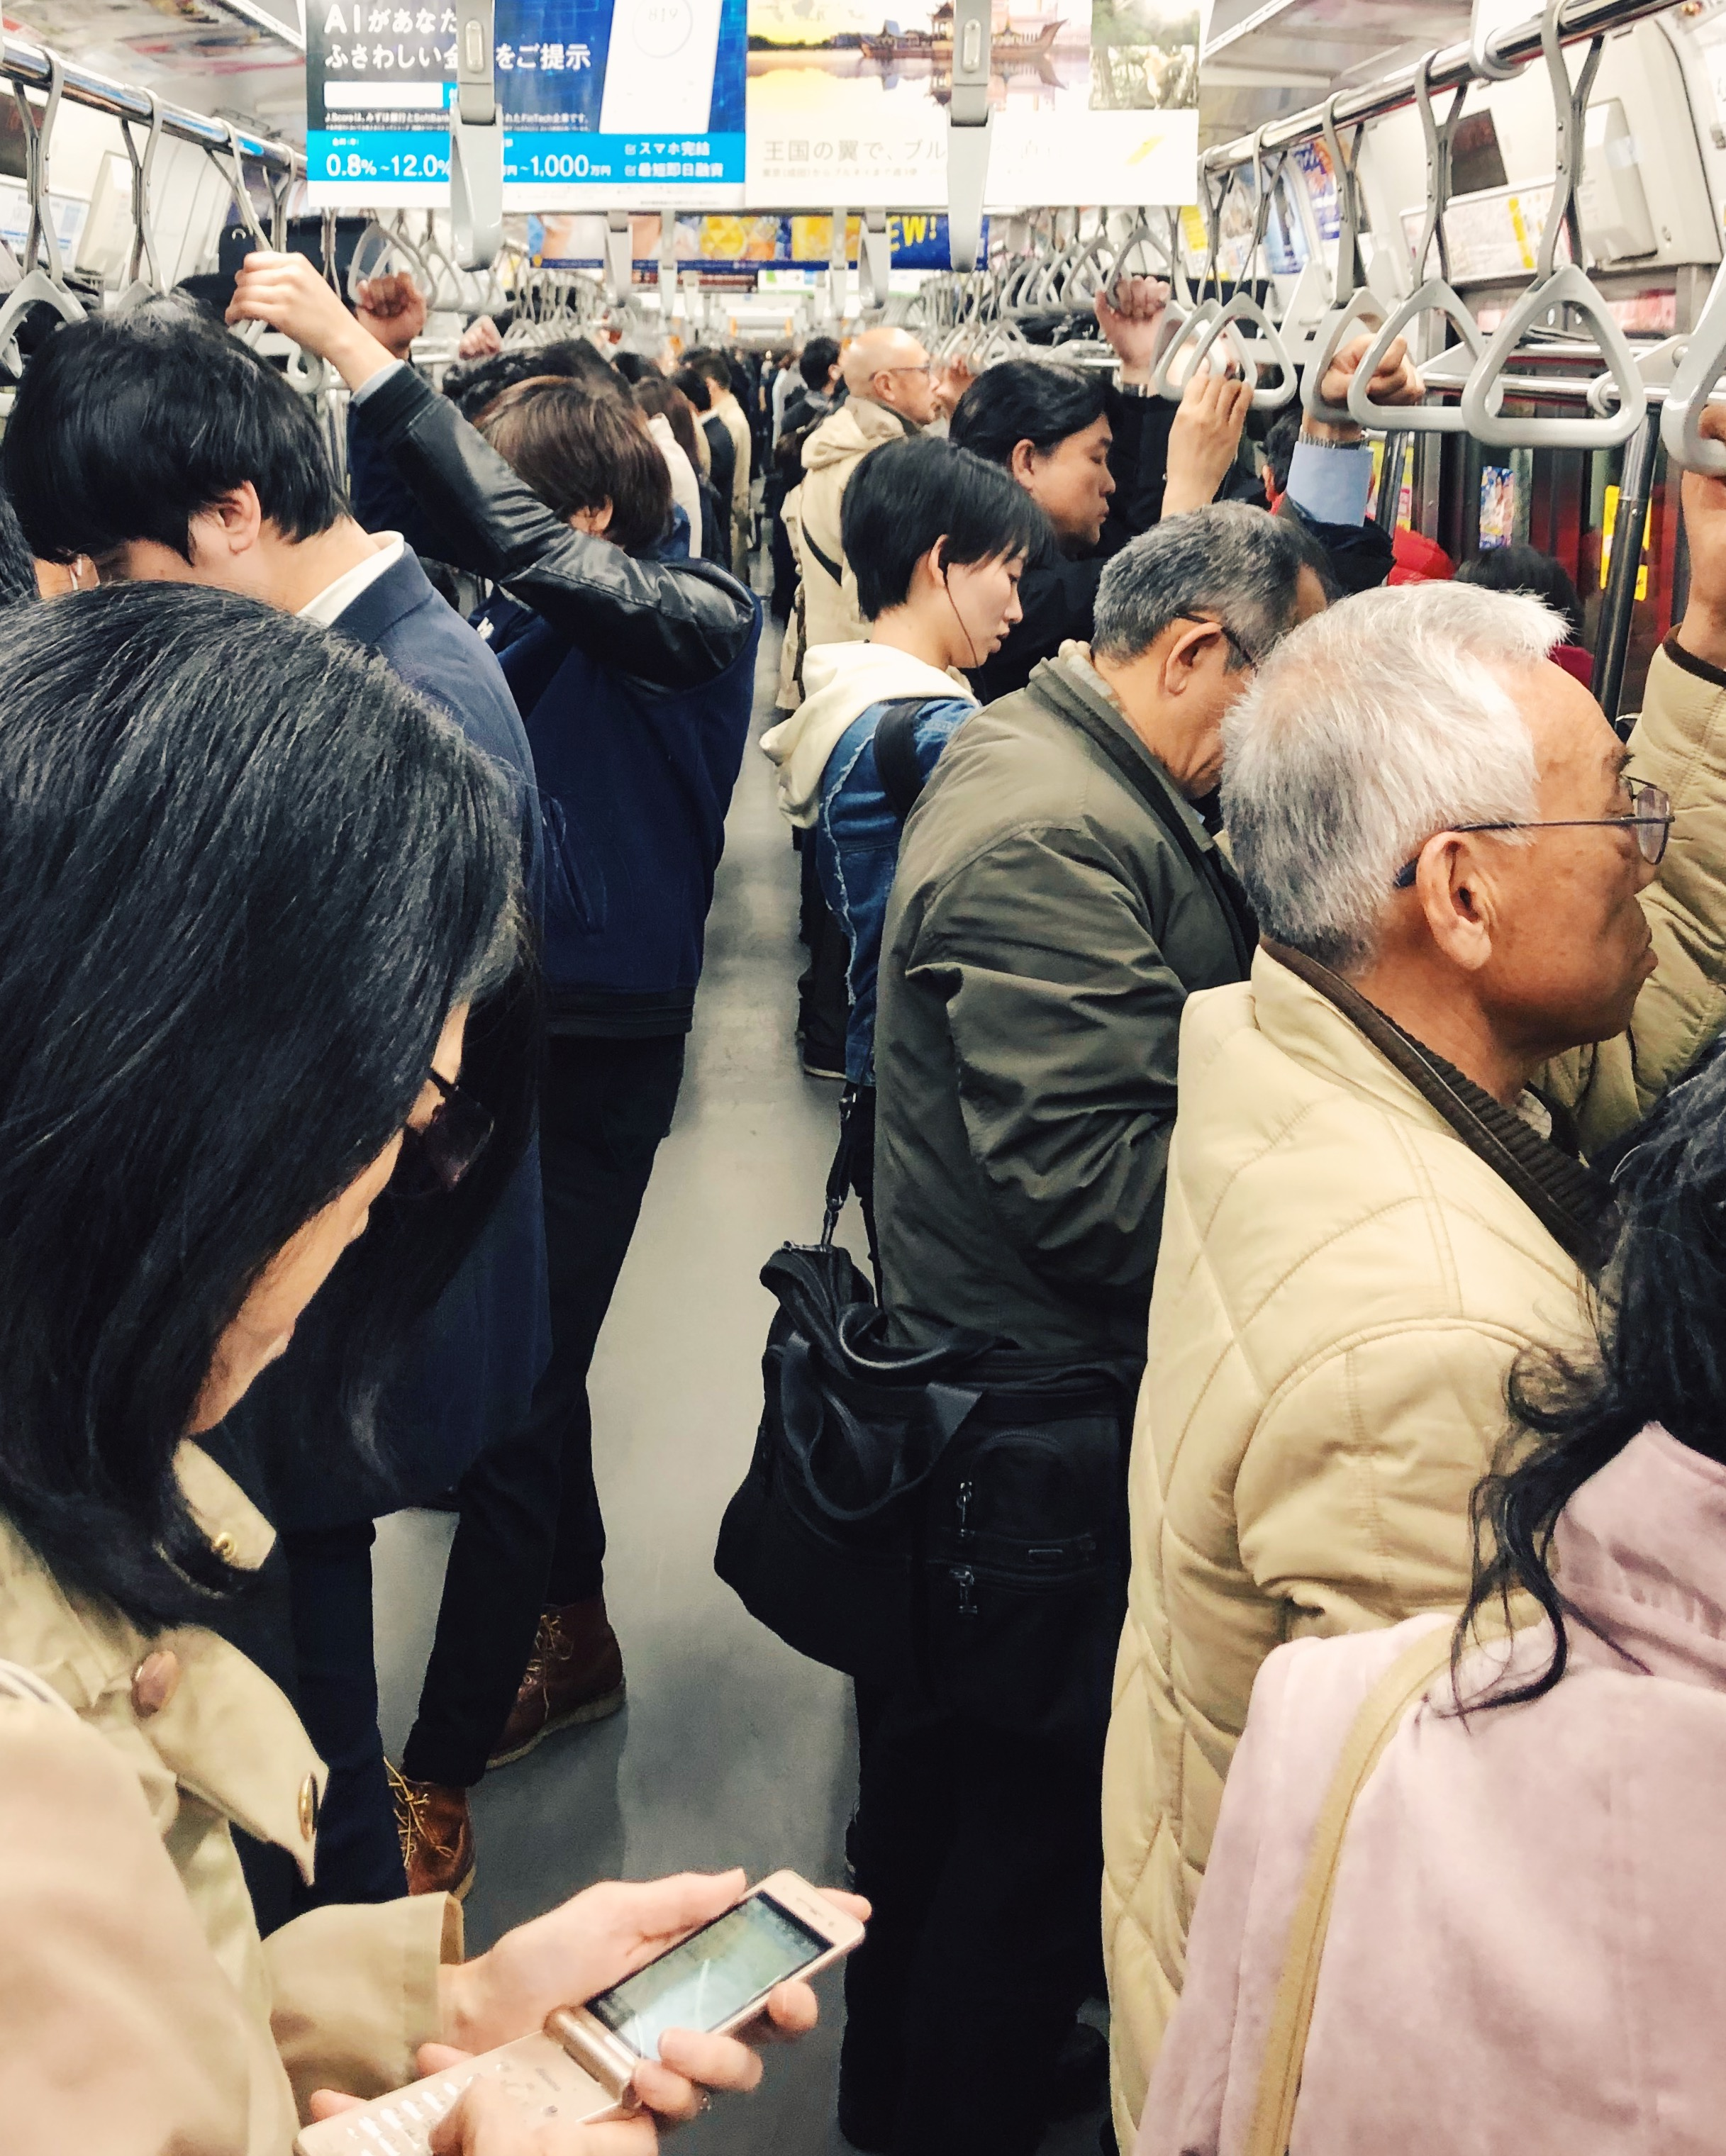 Daily commute, Tokyo.